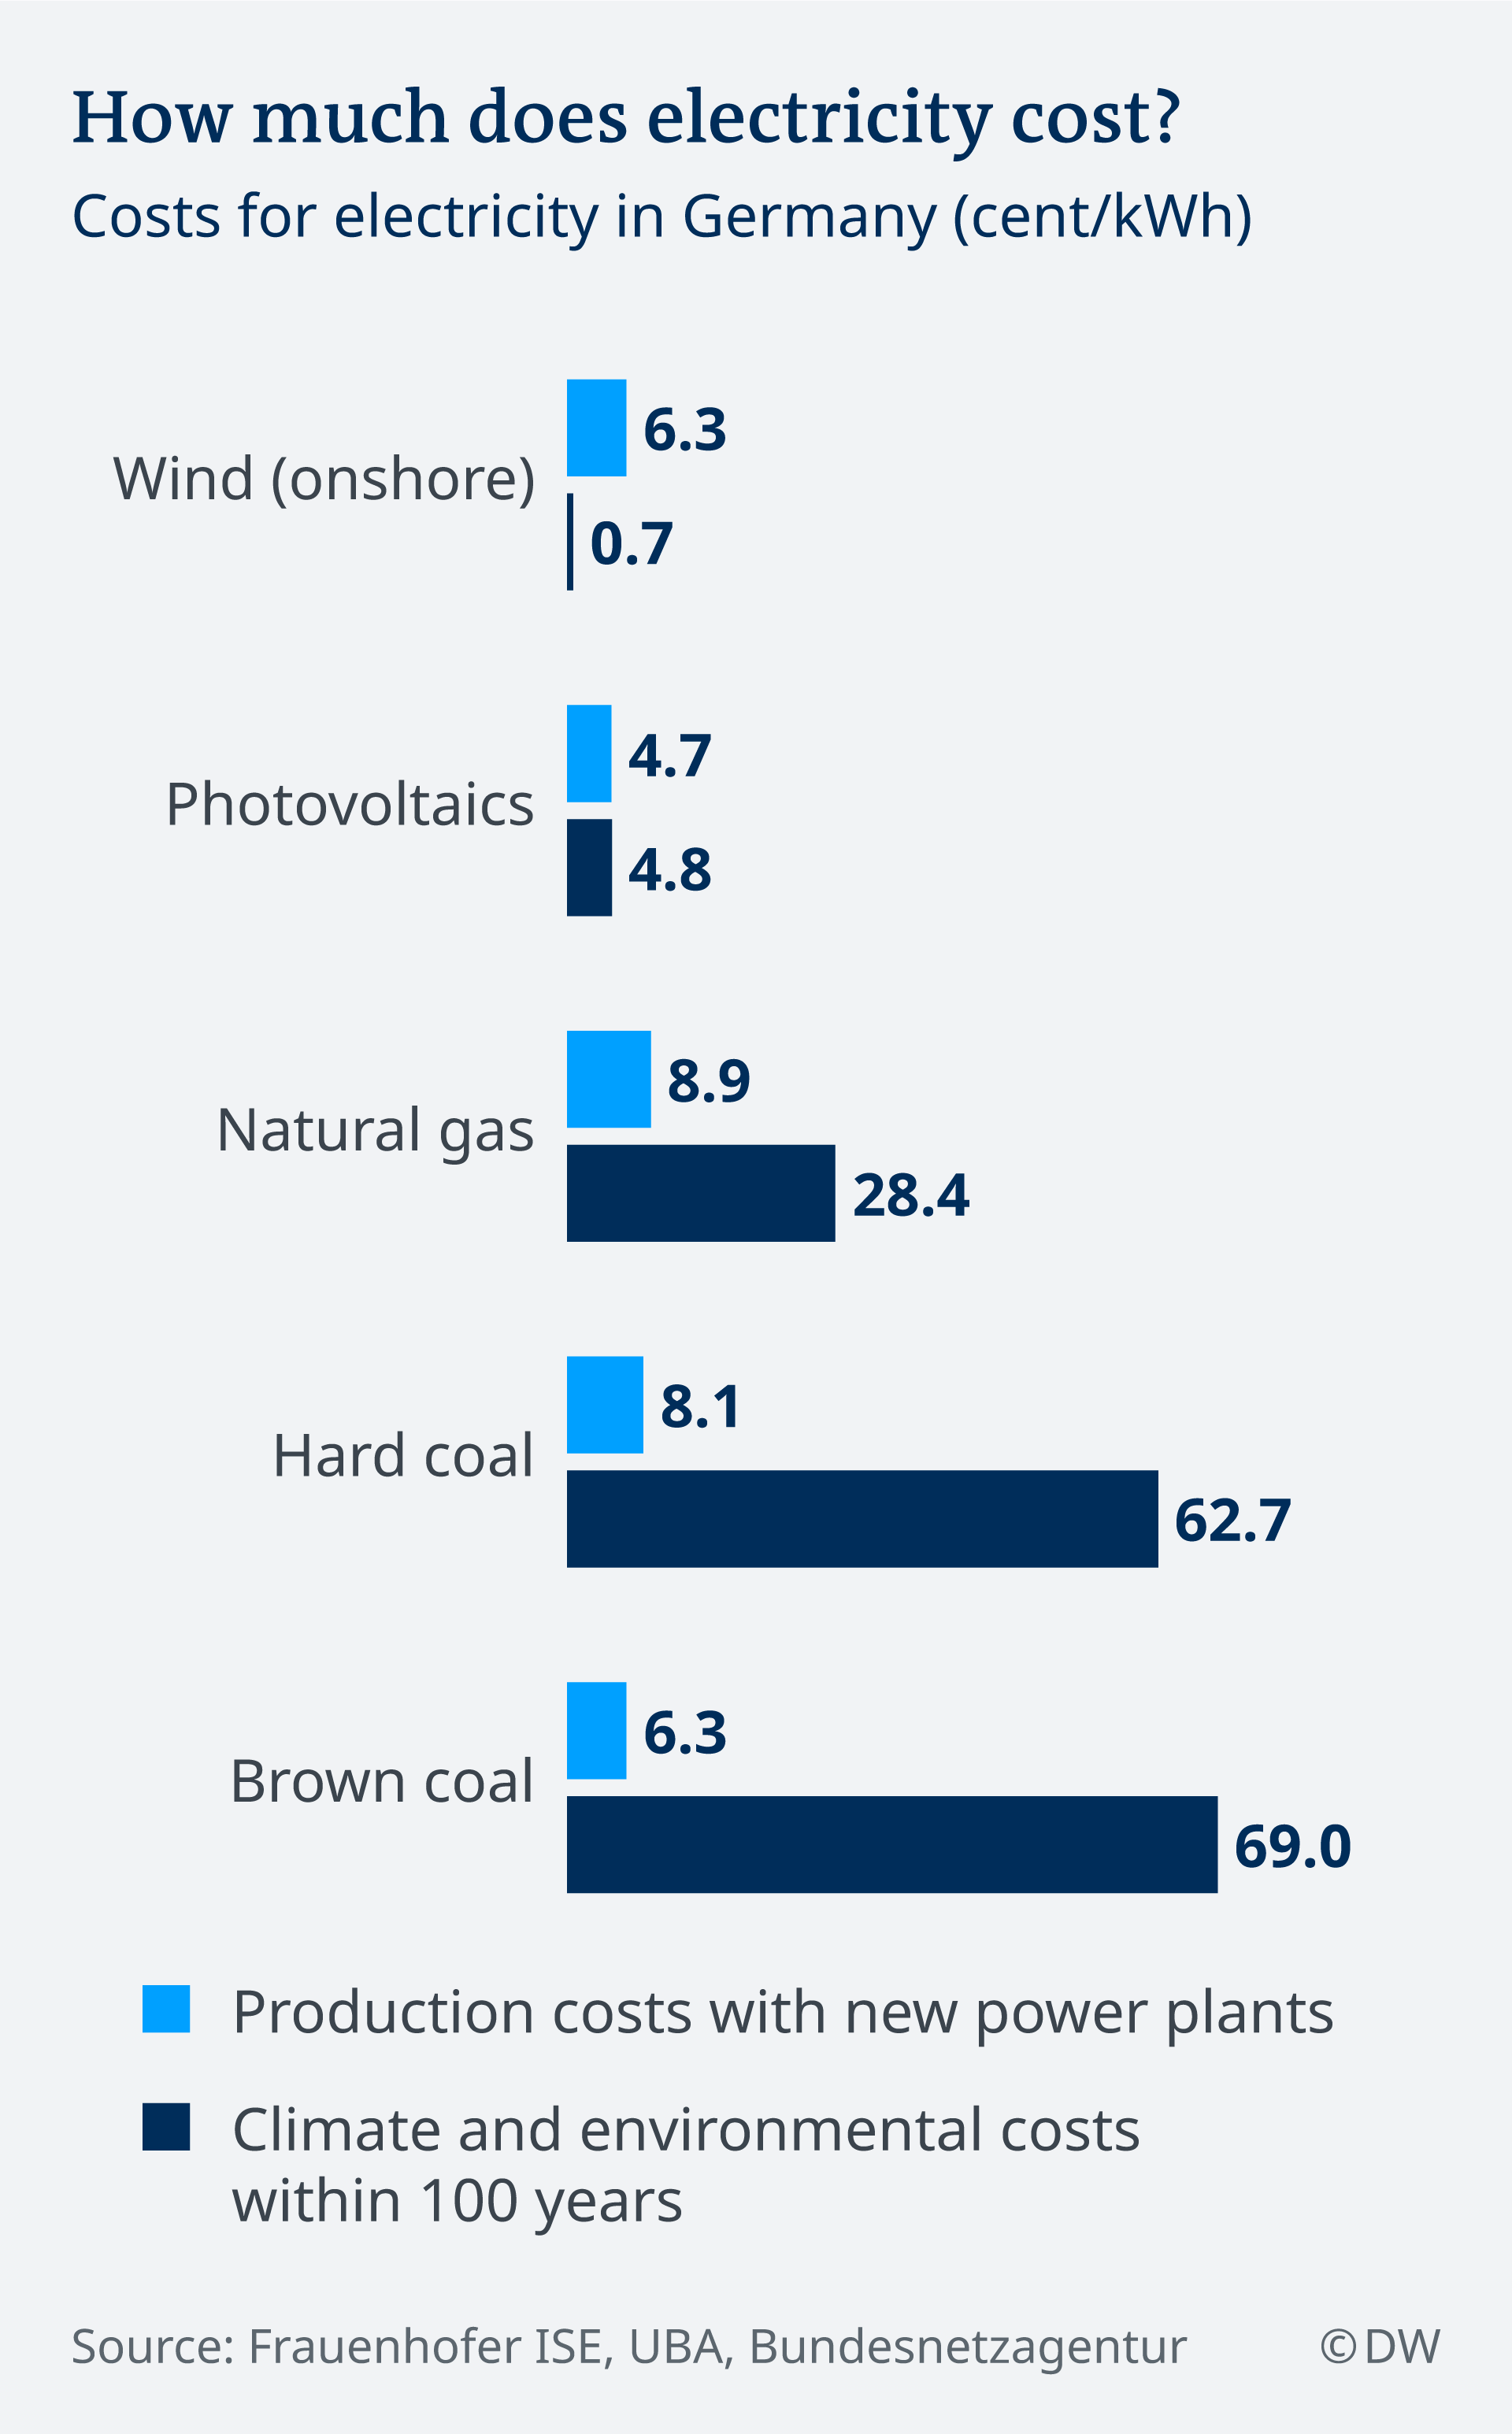 An infographic explaining how much different kinds of electricity costs in Germany. Onshore wind power is by far the cheapest, while hard coal and brown coal is the most expensive.